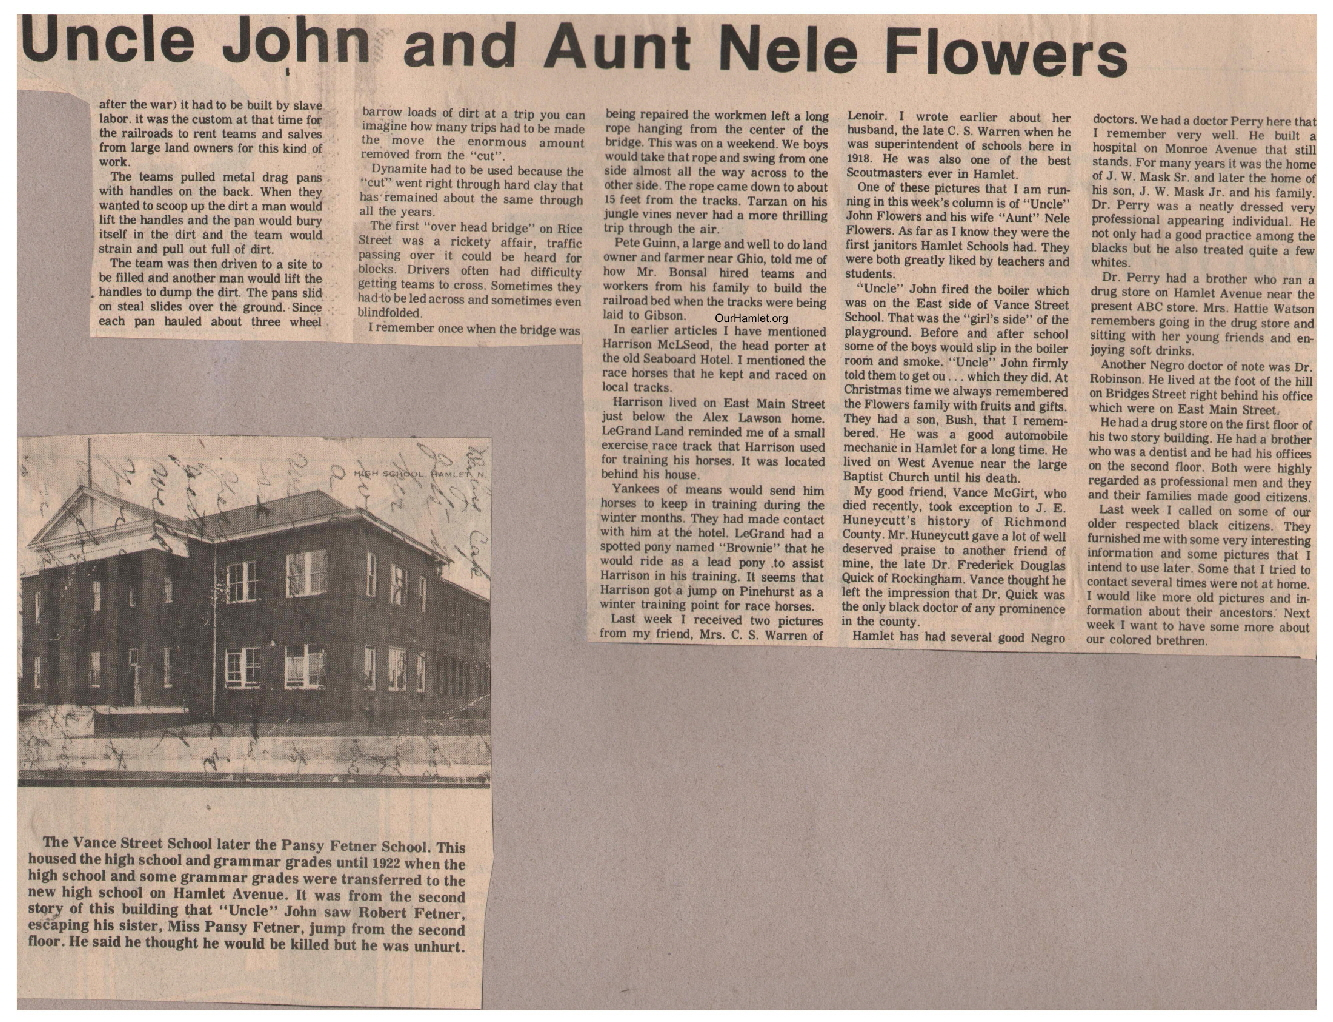 The Squire - Uncle John and Aunt Nele Flowers b OH